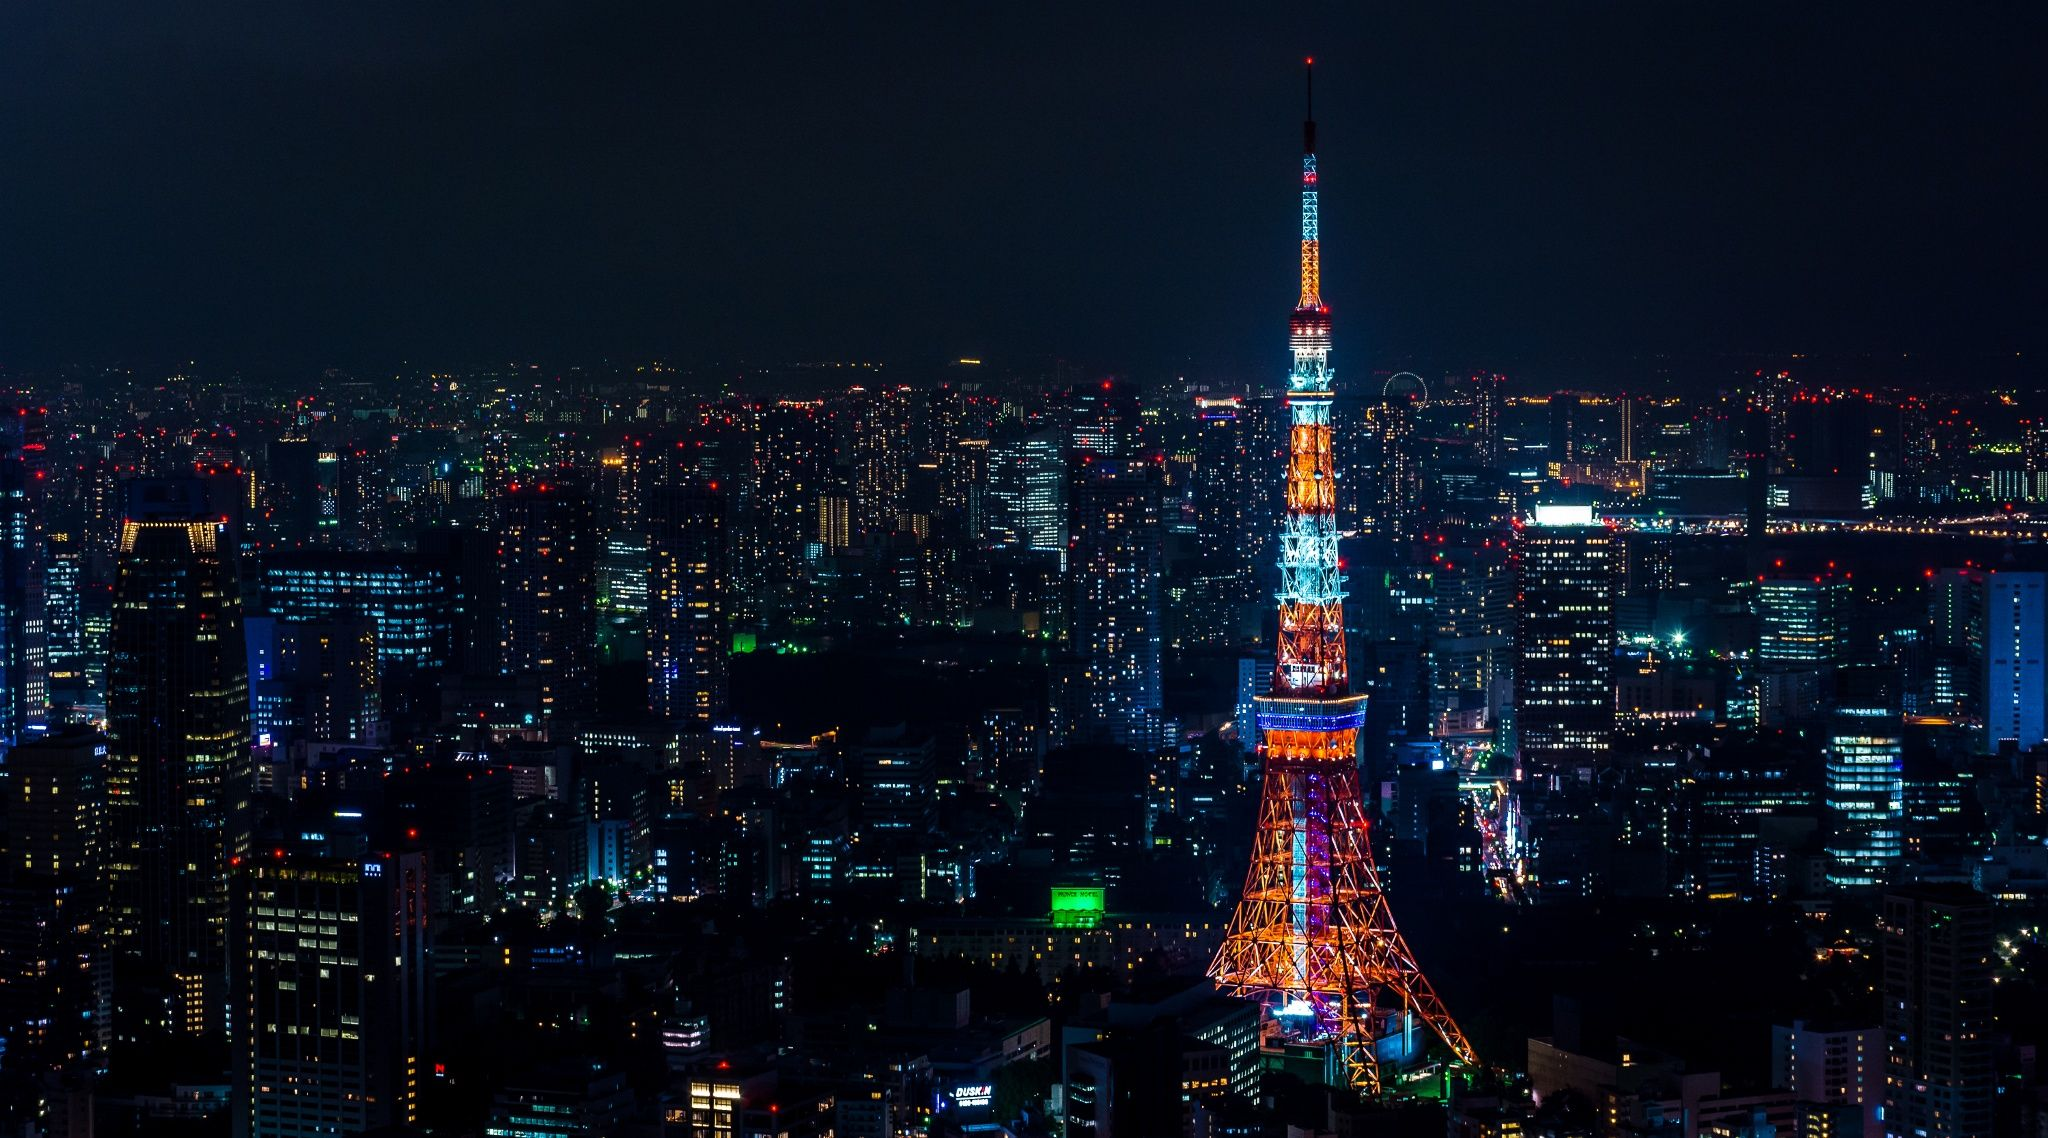 Tokyo tower by night by Emmanuel Alpe on 500px